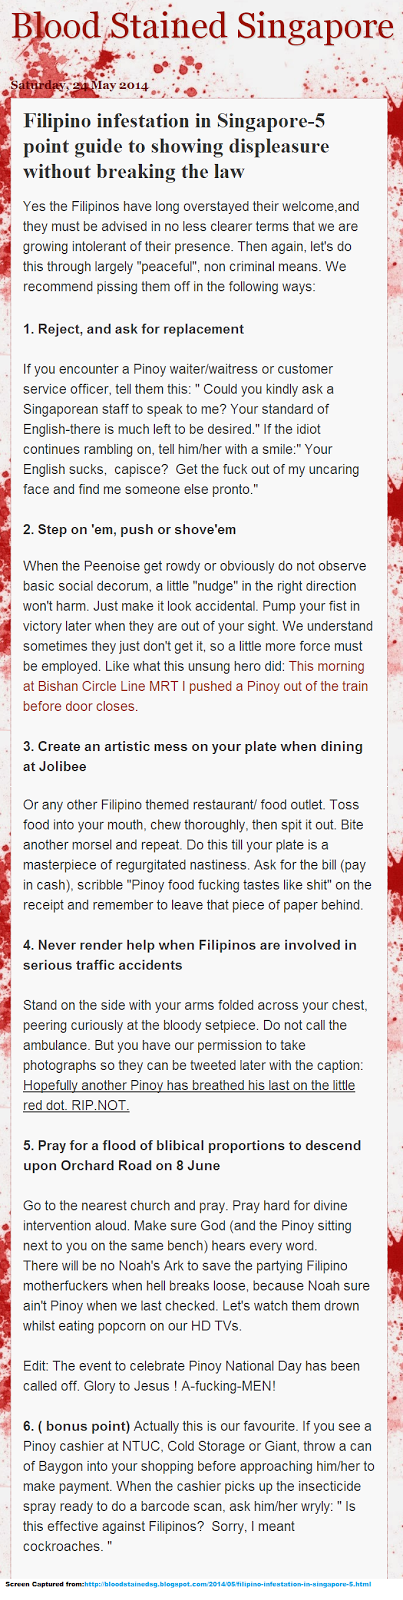 "Filipino infestation in Singapore-5 point guide to showing displeasure without breaking the law  Yes the Filipinos have long overstayed their welcome,and they must be advised in no less clearer terms that we are growing intolerant of their presence. Then again, let's do this through largely ""peaceful"", non criminal means. We recommend pissing them off in the following ways:  1. Reject, and ask for replacement  If you encounter a Pinoy waiter/waitress or customer service officer, tell them this: "" Could you kindly ask a Singaporean staff to speak to me? Your standard of English-there is much left to be desired."" If the idiot continues rambling on, tell him/her with a smile:"" Your English sucks, capisce? Get the fu** out of my uncaring face and find me someone else pronto.""  2. Step on 'em, push or shove'em  When the Peenoise get rowdy or obviously do not observe basic social decorum, a little ""nudge"" in the right direction won't harm. Just make it look accidental. Pump your fist in victory later when they are out of your sight. We understand sometimes they just don't get it, so a little more force must be employed. Like what this unsung hero did: This morning at Bishan Circle Line MRT I pushed a Pinoy out of the train before door closes.  3. Create an artistic mess on your plate when dining at Jolibee  Or any other Filipino themed restaurant/ food outlet. Toss food into your mouth, chew thoroughly, then spit it out. Bite another morsel and repeat. Do this till your plate is a masterpiece of regurgitated nastiness. Ask for the bill (pay in cash), scribble ""Pinoy food fu**ing tastes like shi*"" on the receipt and remember to leave that piece of paper behind.  4. Never render help when Filipinos are involved in serious traffic accidents  Stand on the side with your arms folded across your chest, peering curiously at the bloody setpiece. Do not call the ambulance. But you have our permission to take photographs so they can be tweeted later with the caption: Hopefully another Pinoy has breathed his last on the little red dot. RIP.NOT.  5. Pray for a flood of blibical proportions to descend upon Orchard Road on 8 June  Go to the nearest church and pray. Pray hard for divine intervention aloud. Make sure God (and the Pinoy sitting next to you on the same bench) hears every word.  There will be no Noah's Ark to save the partying Filipino motherfu**ers when hell breaks loose, because Noah sure ain't Pinoy when we last checked. Let's watch them drown whilst eating popcorn on our HD TVs.  Edit: The event to celebrate Pinoy National Day has been called off. Glory to Jesus ! A-fu**ing-MEN!  6. ( bonus point) Actually this is our favourite. If you see a Pinoy cashier at NTUC, Cold Storage or Giant, throw a can of Baygon into your shopping before approaching him/her to make payment. When the cashier picks up the insecticide spray ready to do a barcode scan, ask him/her wryly: "" Is this effective against Filipinos? Sorry, I meant cockroaches. """